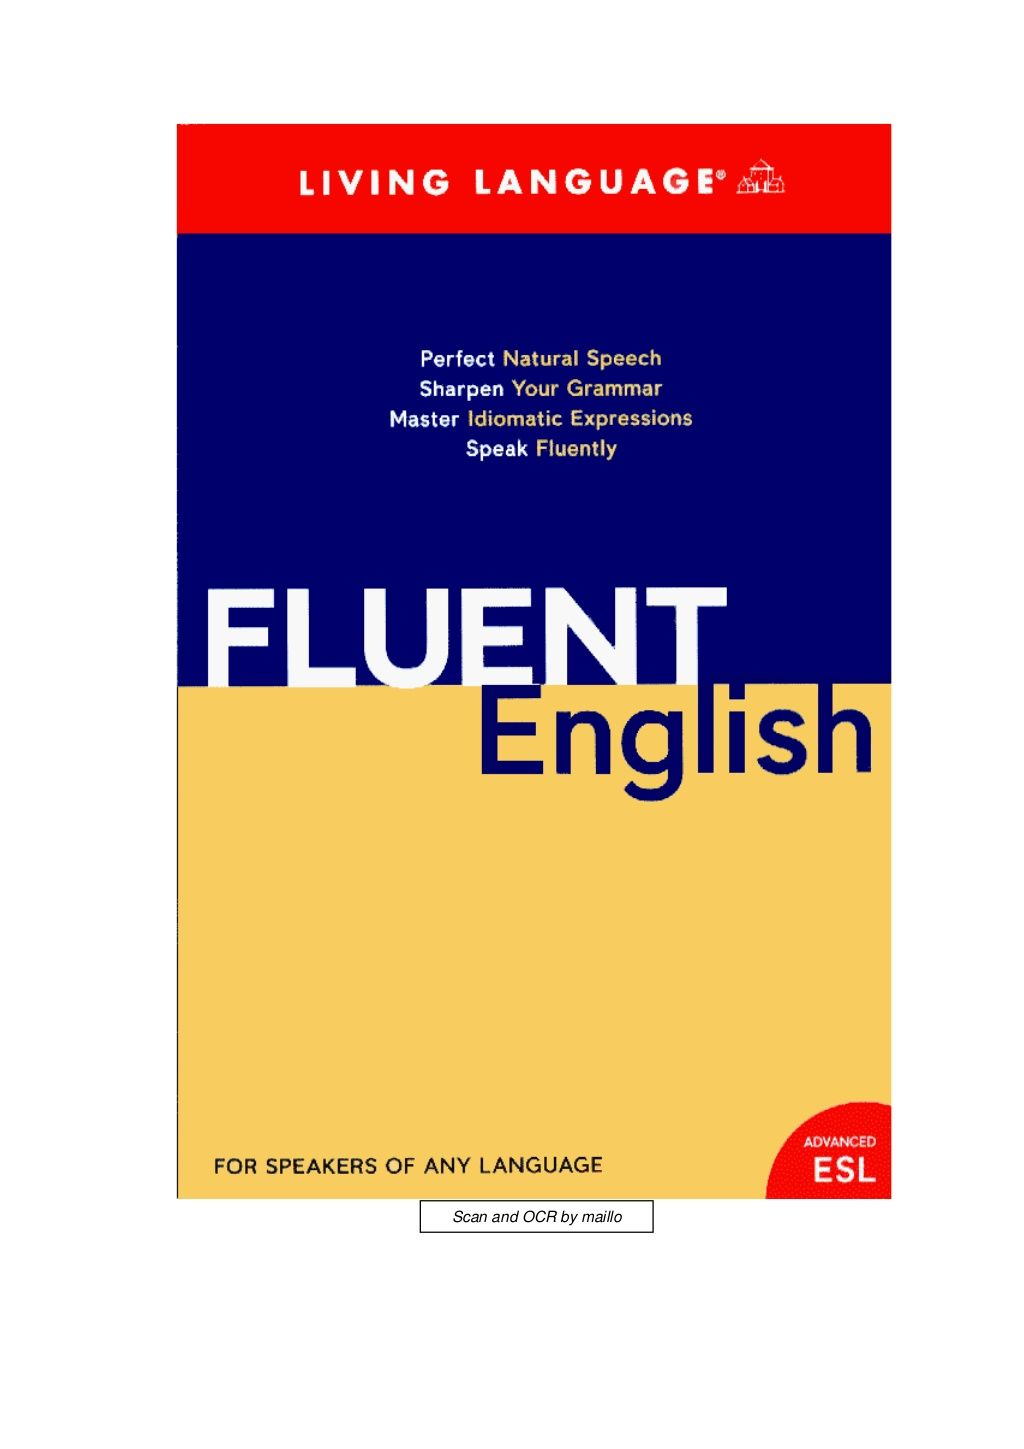 Fluent English, your guide to speak English like native